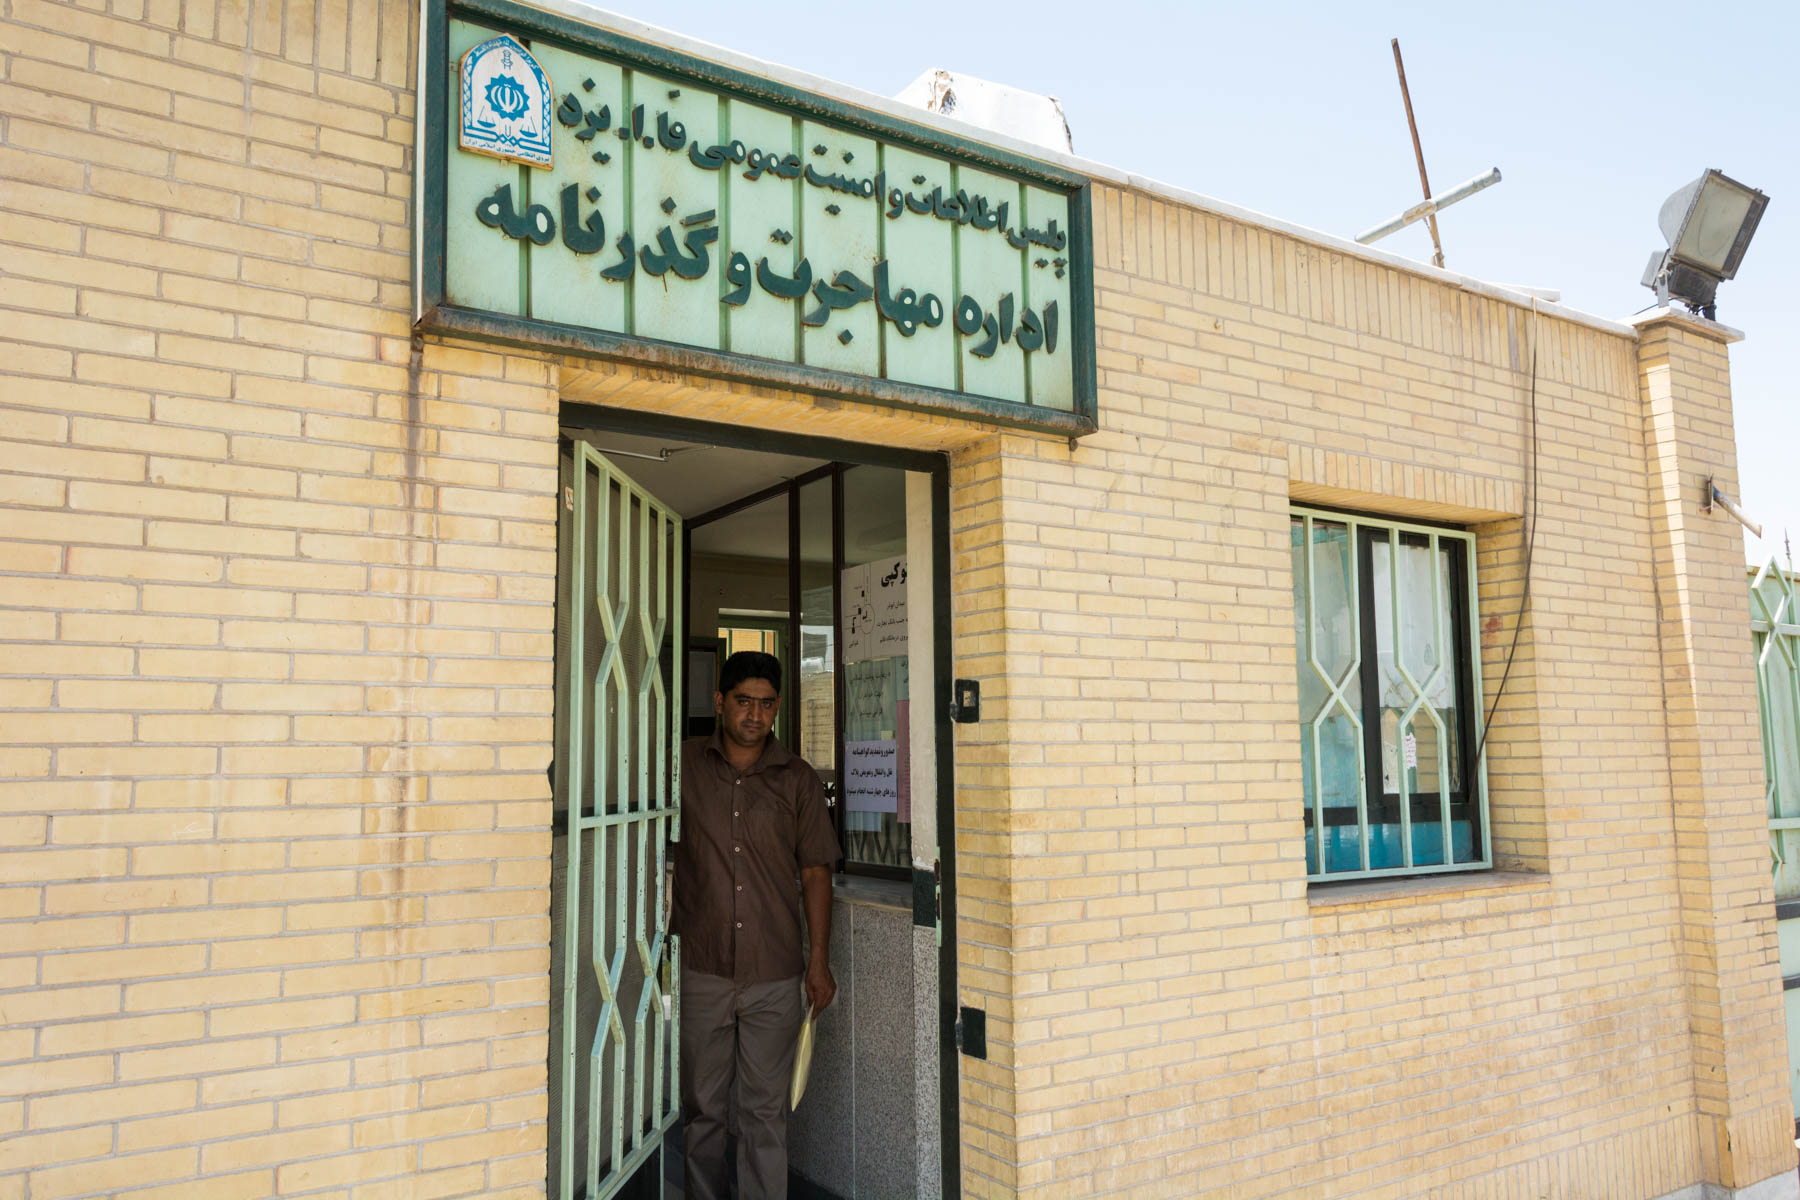 The entrance to the Passport and Alien Affairs office in Yazd, Iran